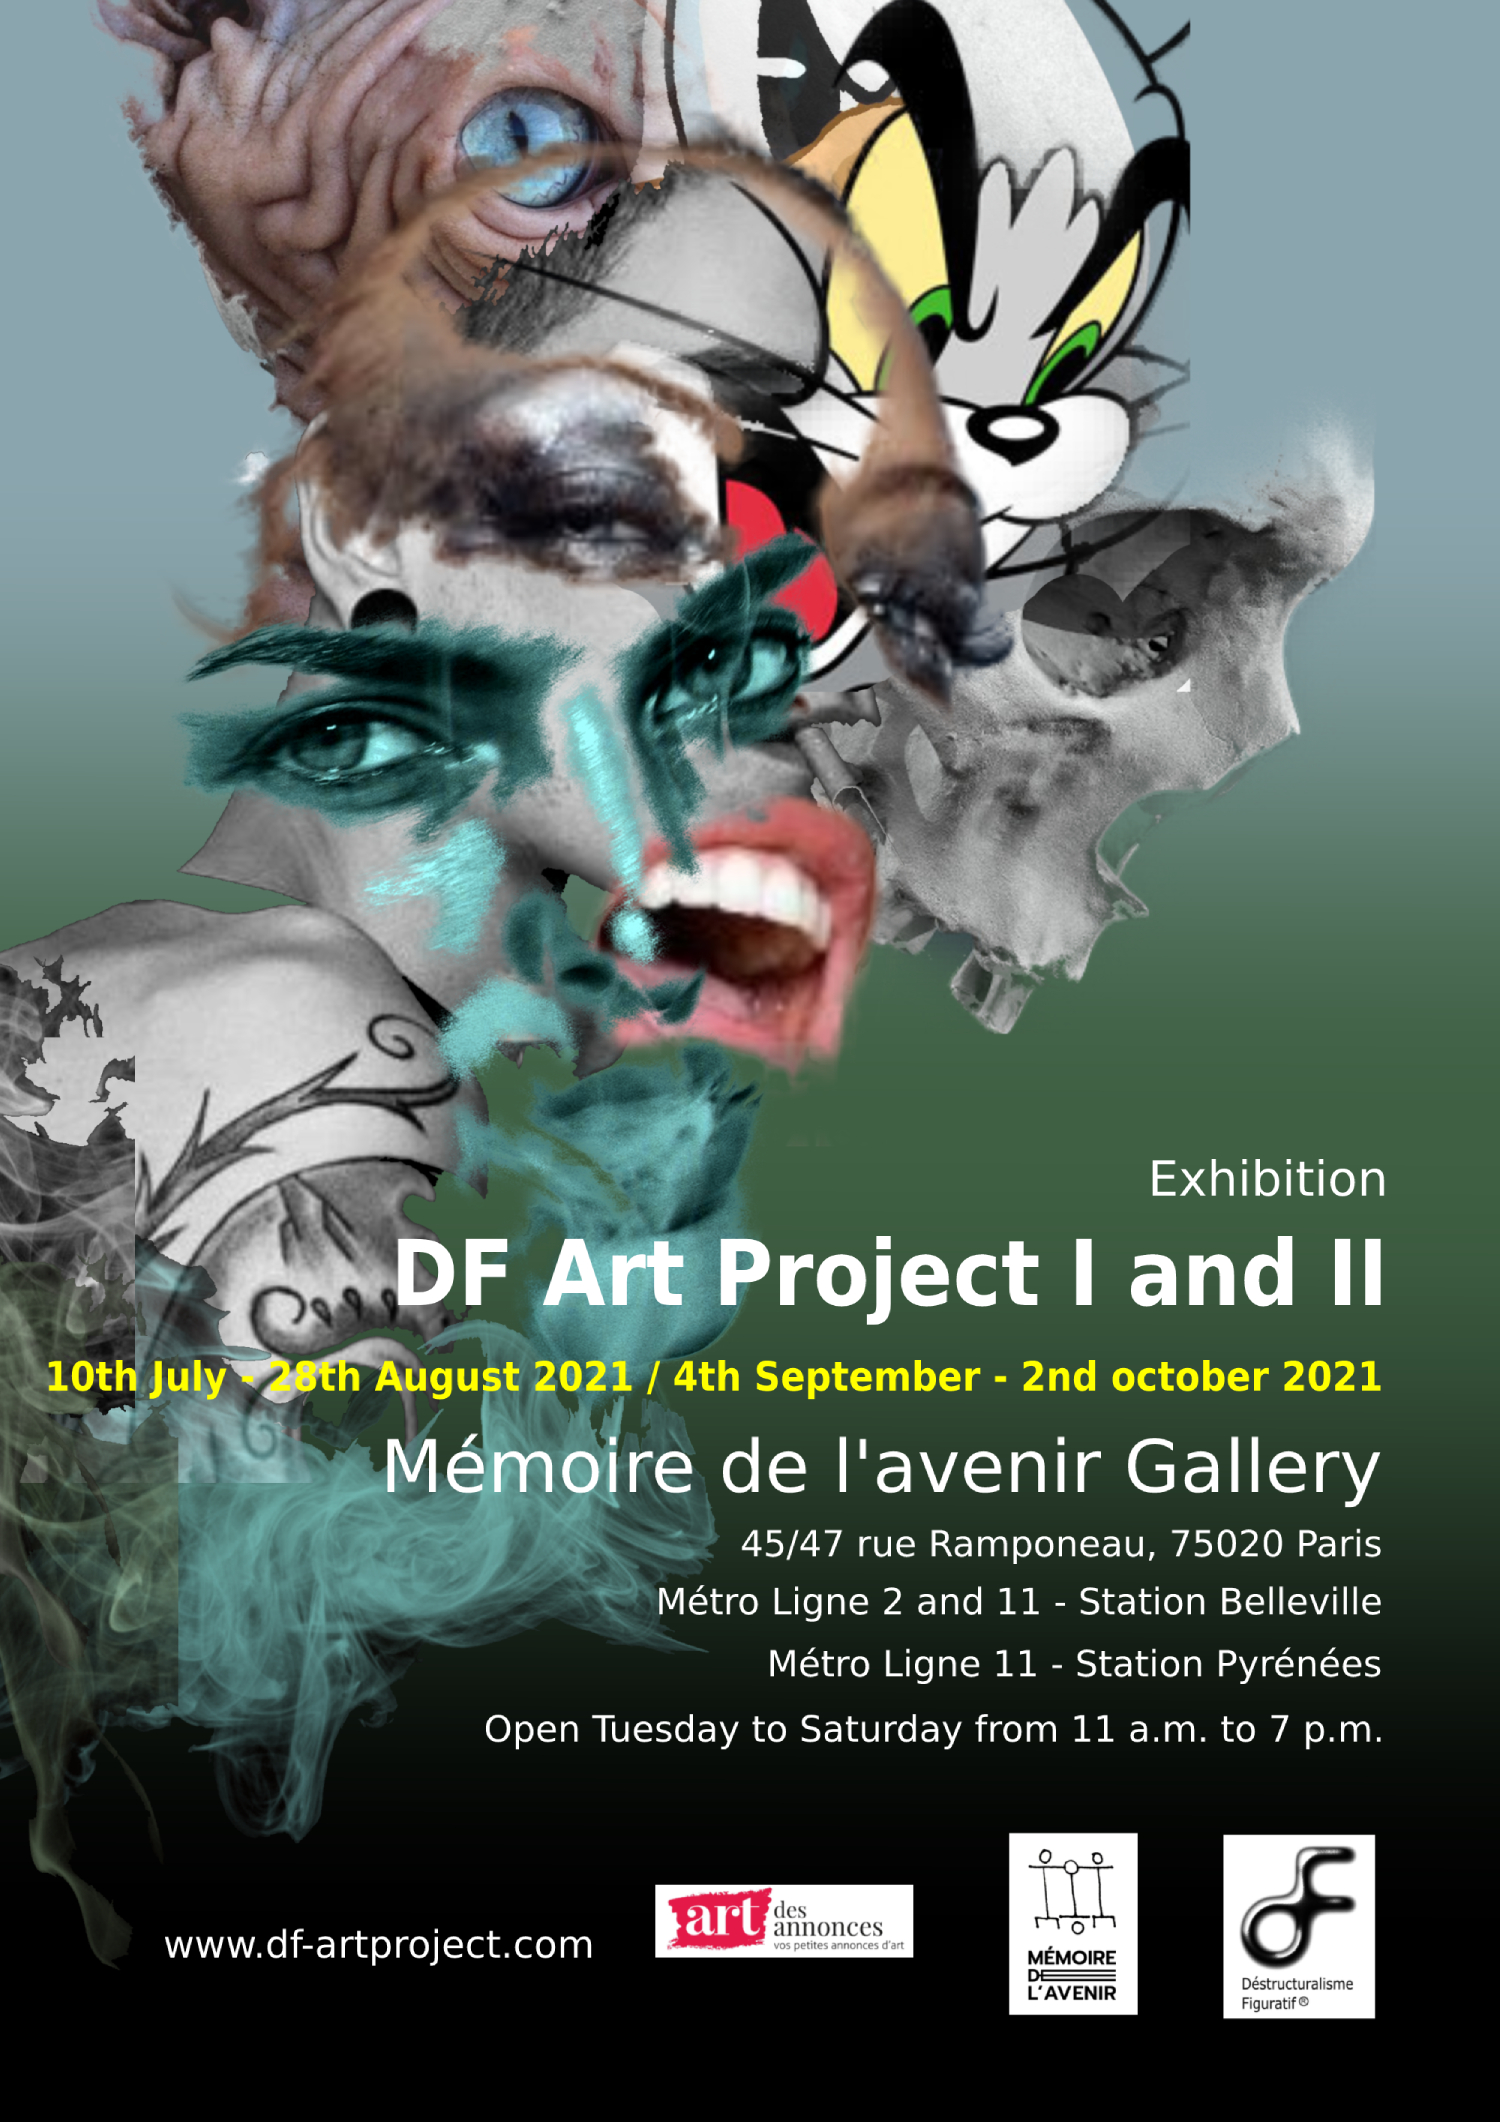 DF Art Project Exhibition I & II